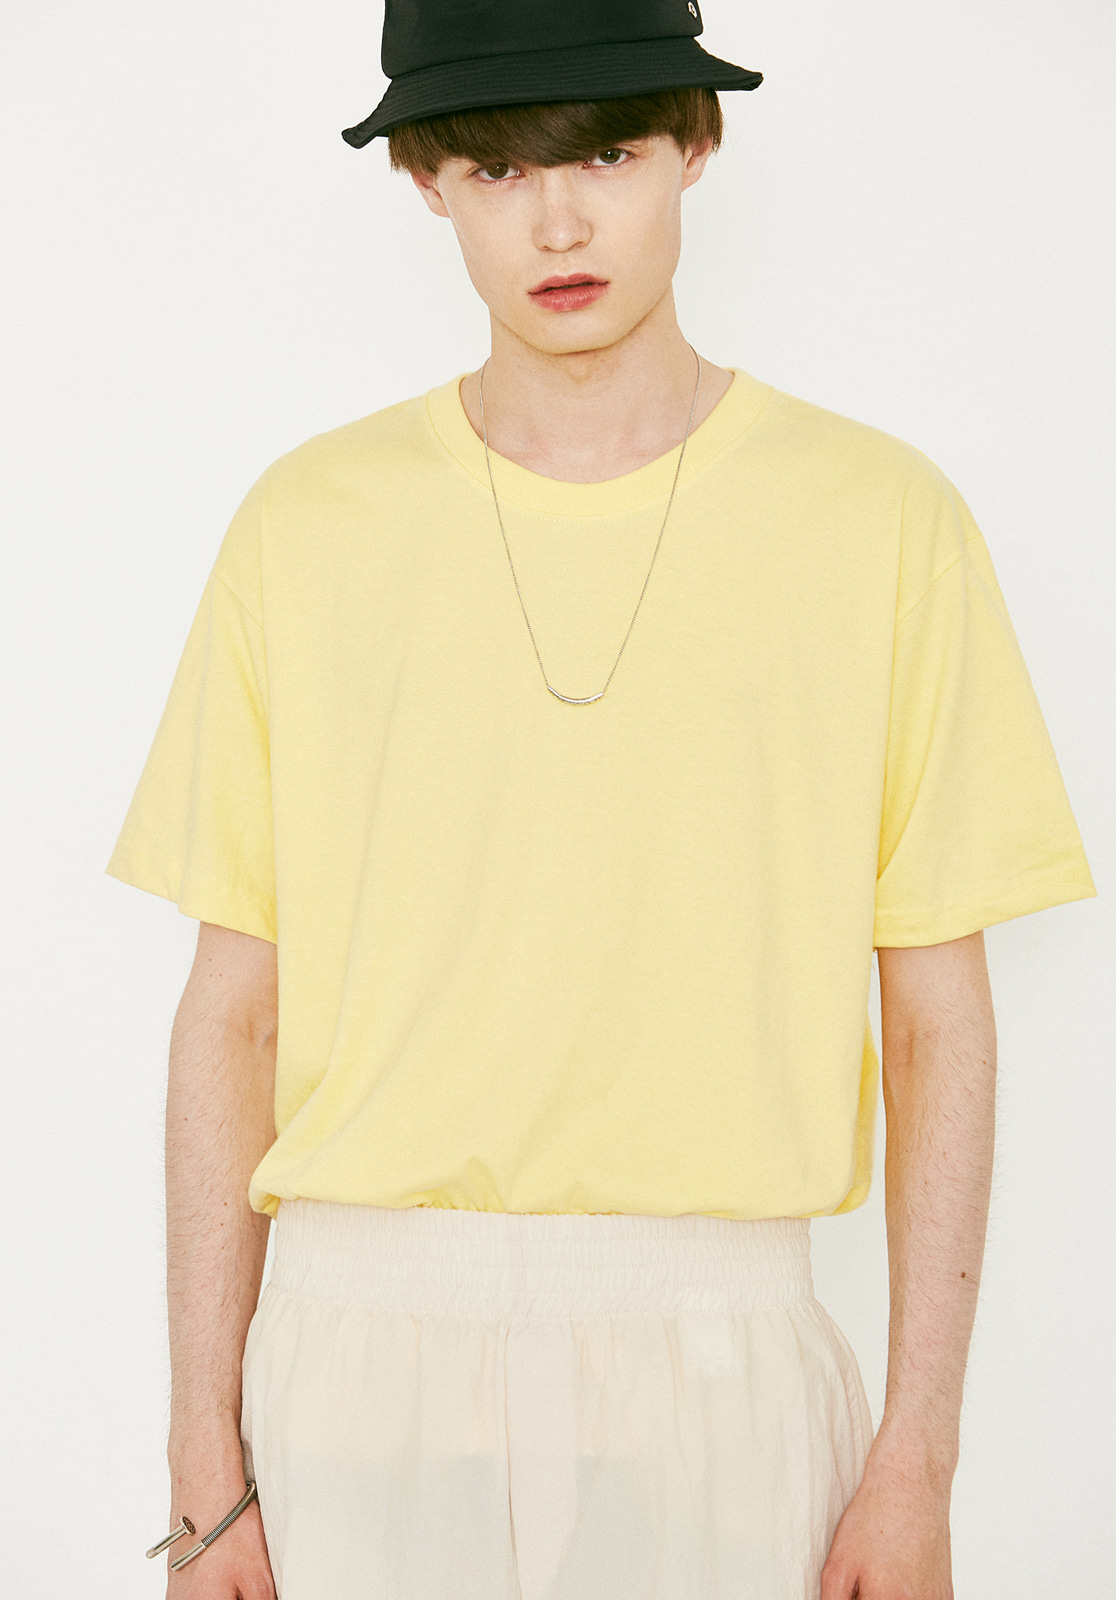 V367 BASIC OVER FIT HALF-TEE YELLOW